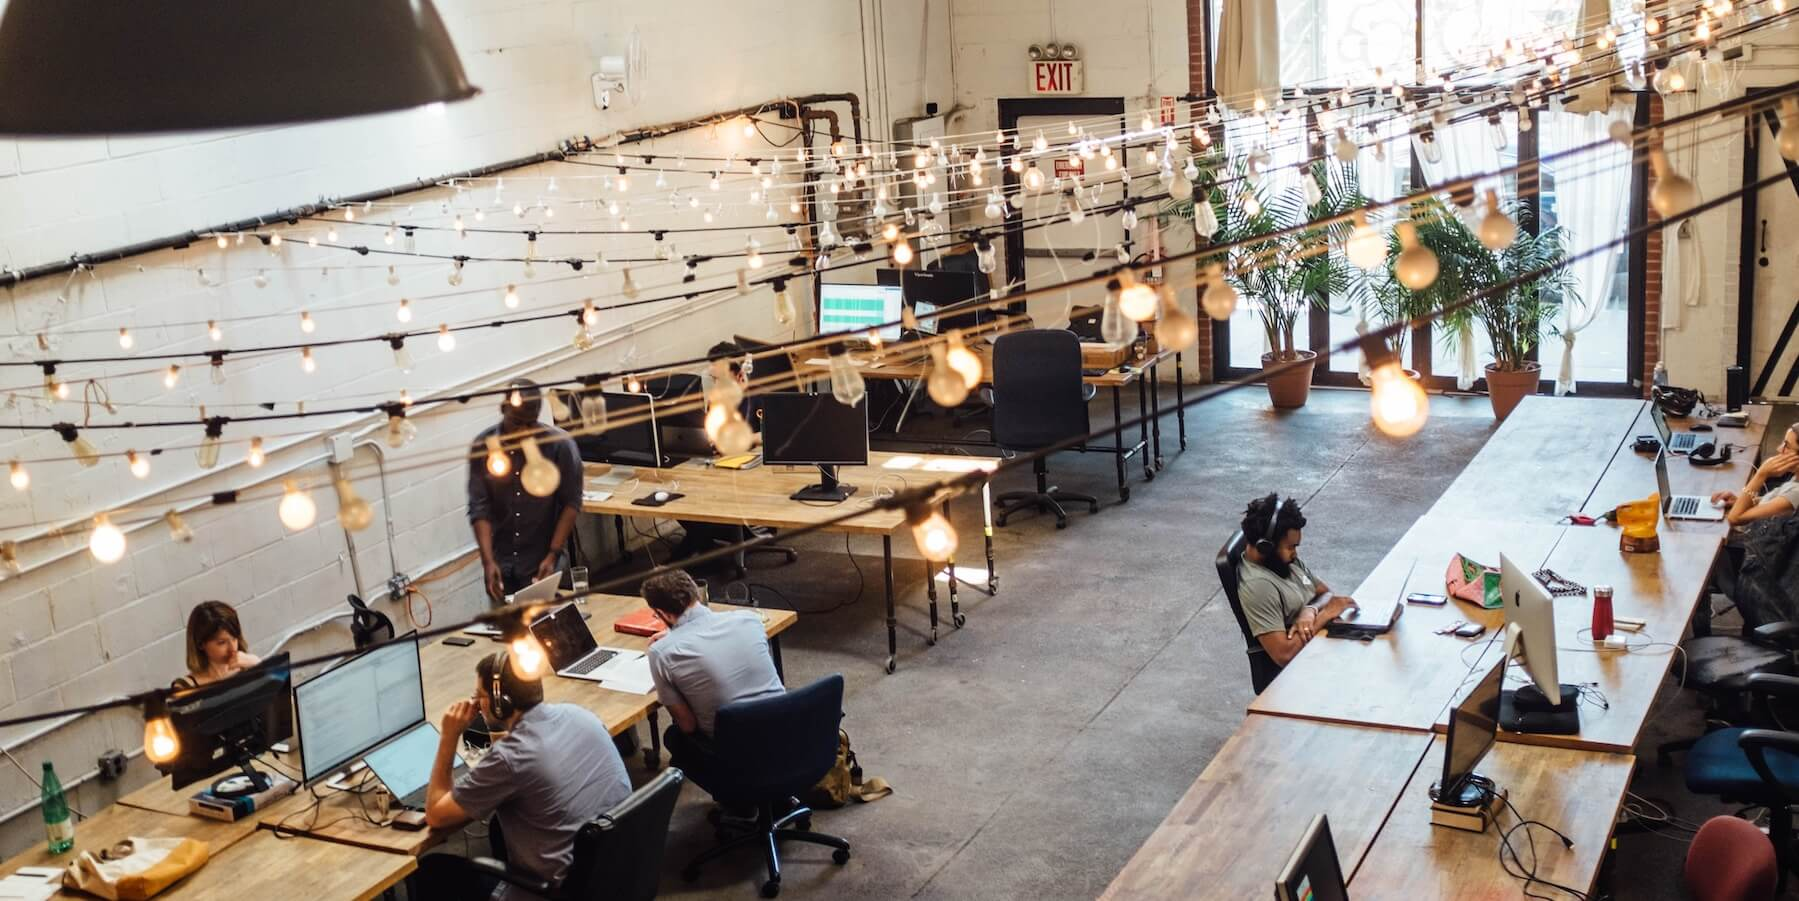 People working under string lights in a bright and airy coworking space